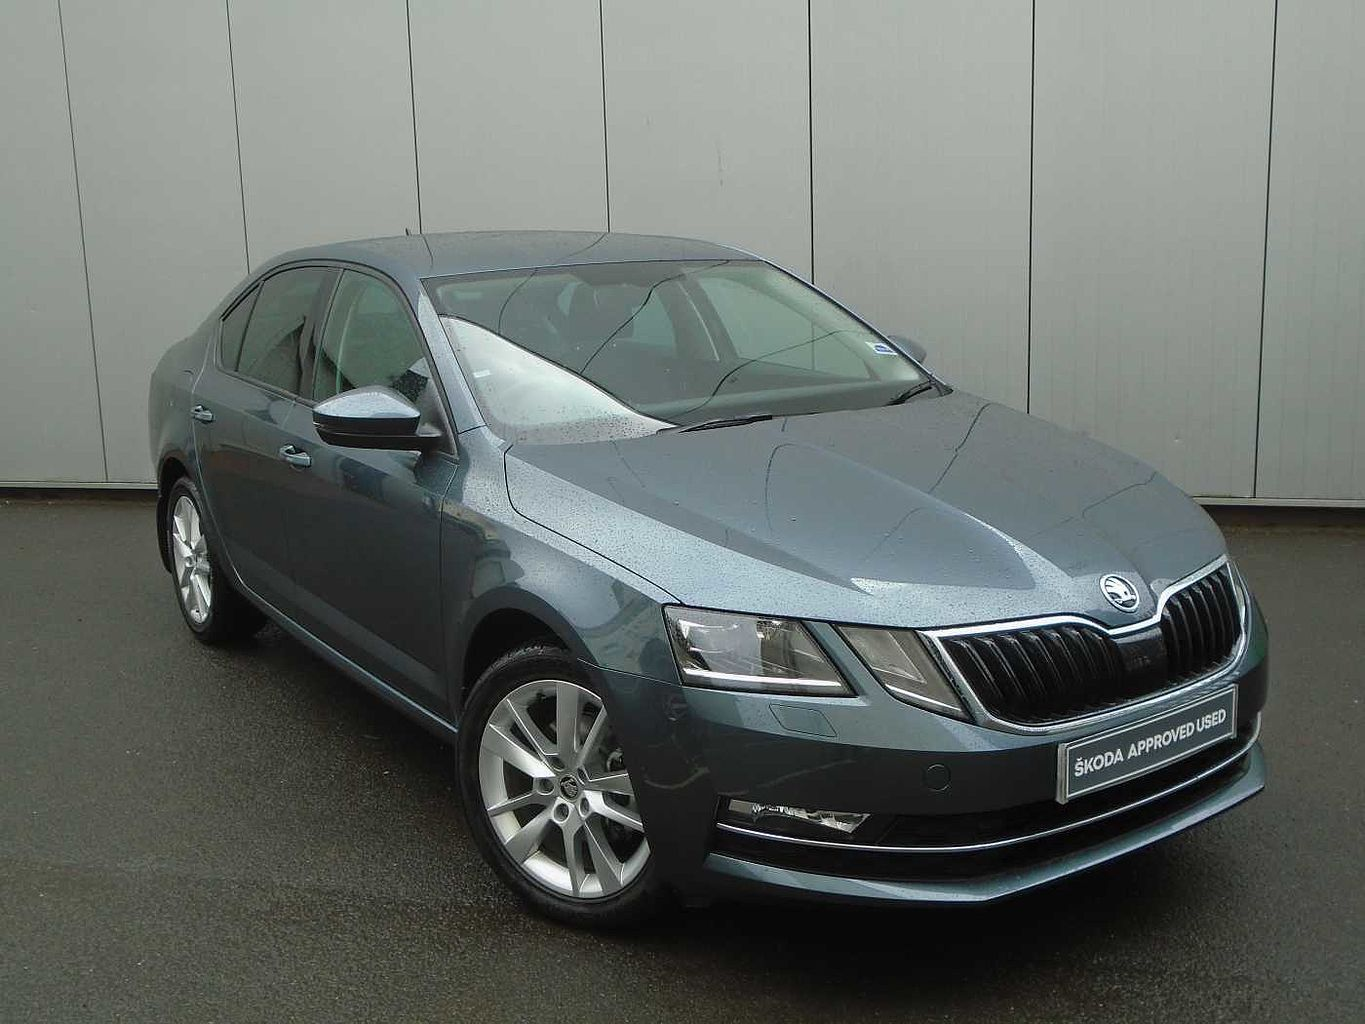 ŠKODA Octavia Hatchback (2017) 1.5 TSI ACT SE L (150PS)